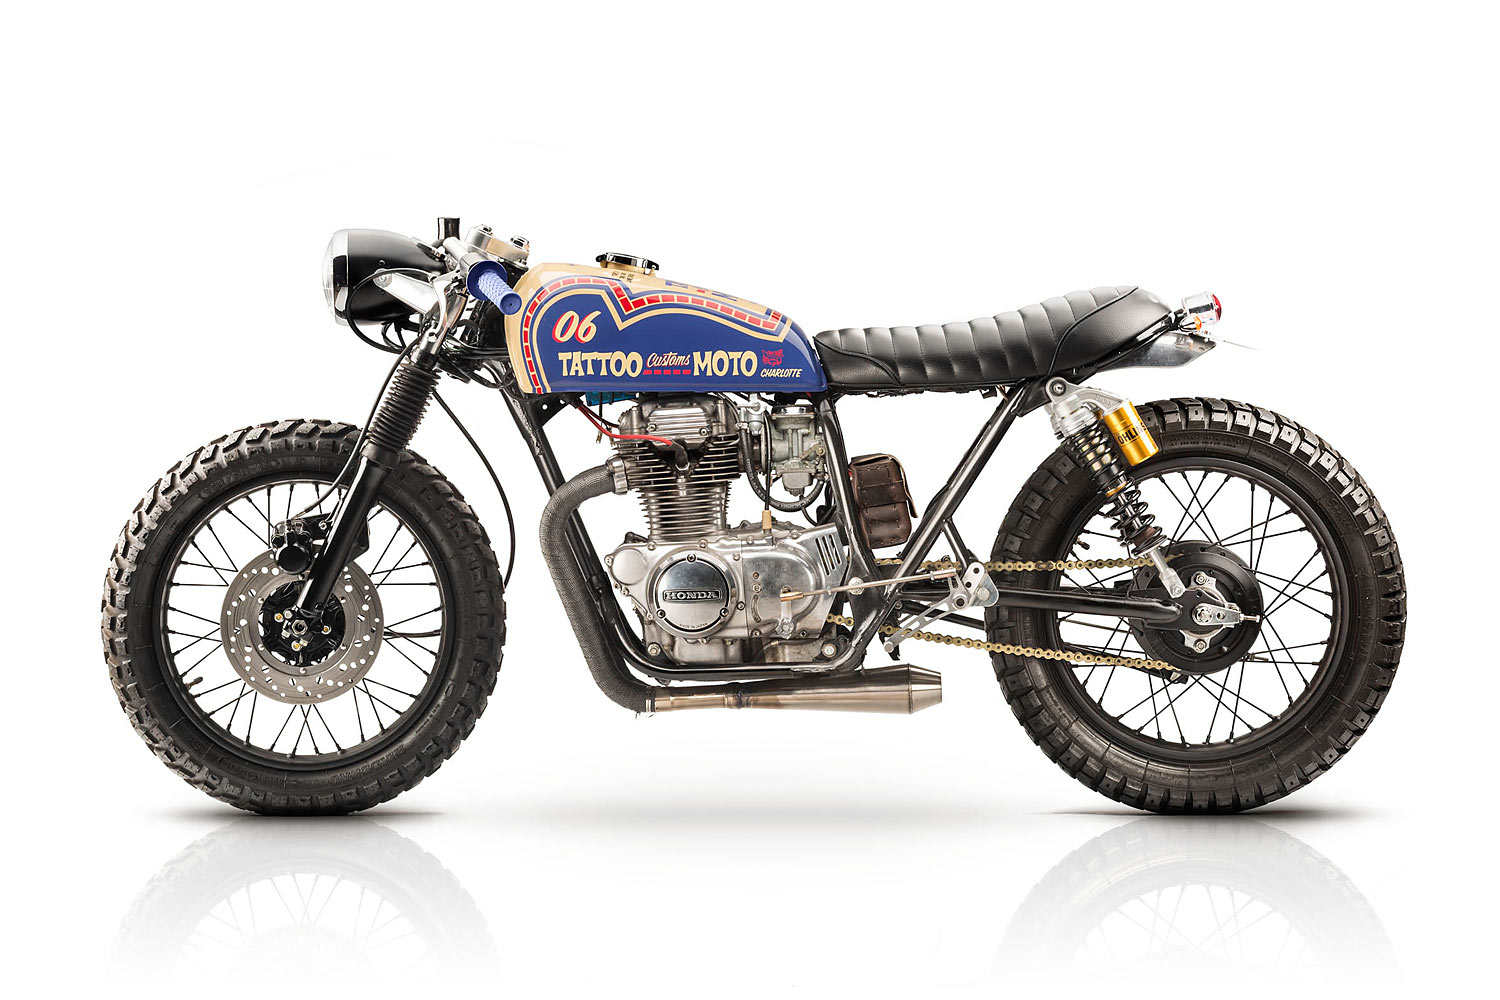 And His Hopelessly Stalled Honda CB360 Project Six Months Of Head Scratching Face Palming Nothingness Then A Beautiful Lightbulb Moment Hits Him